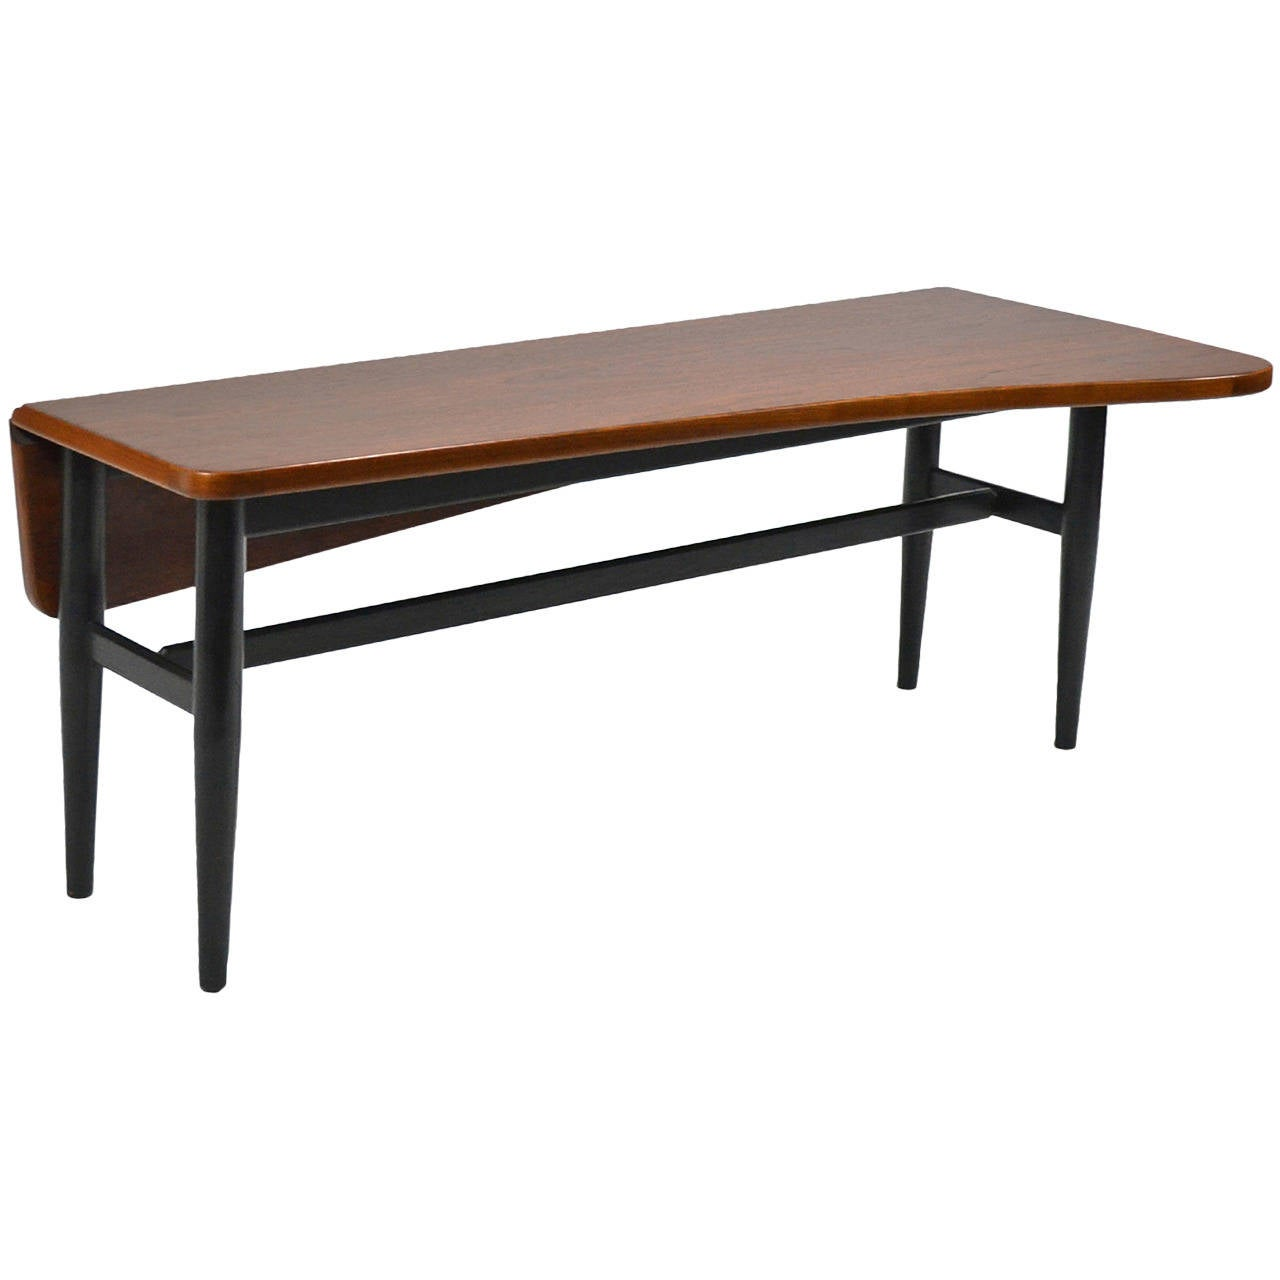 Finn Juhl Drop Leaf Coffee Table For Sale At 1stdibs